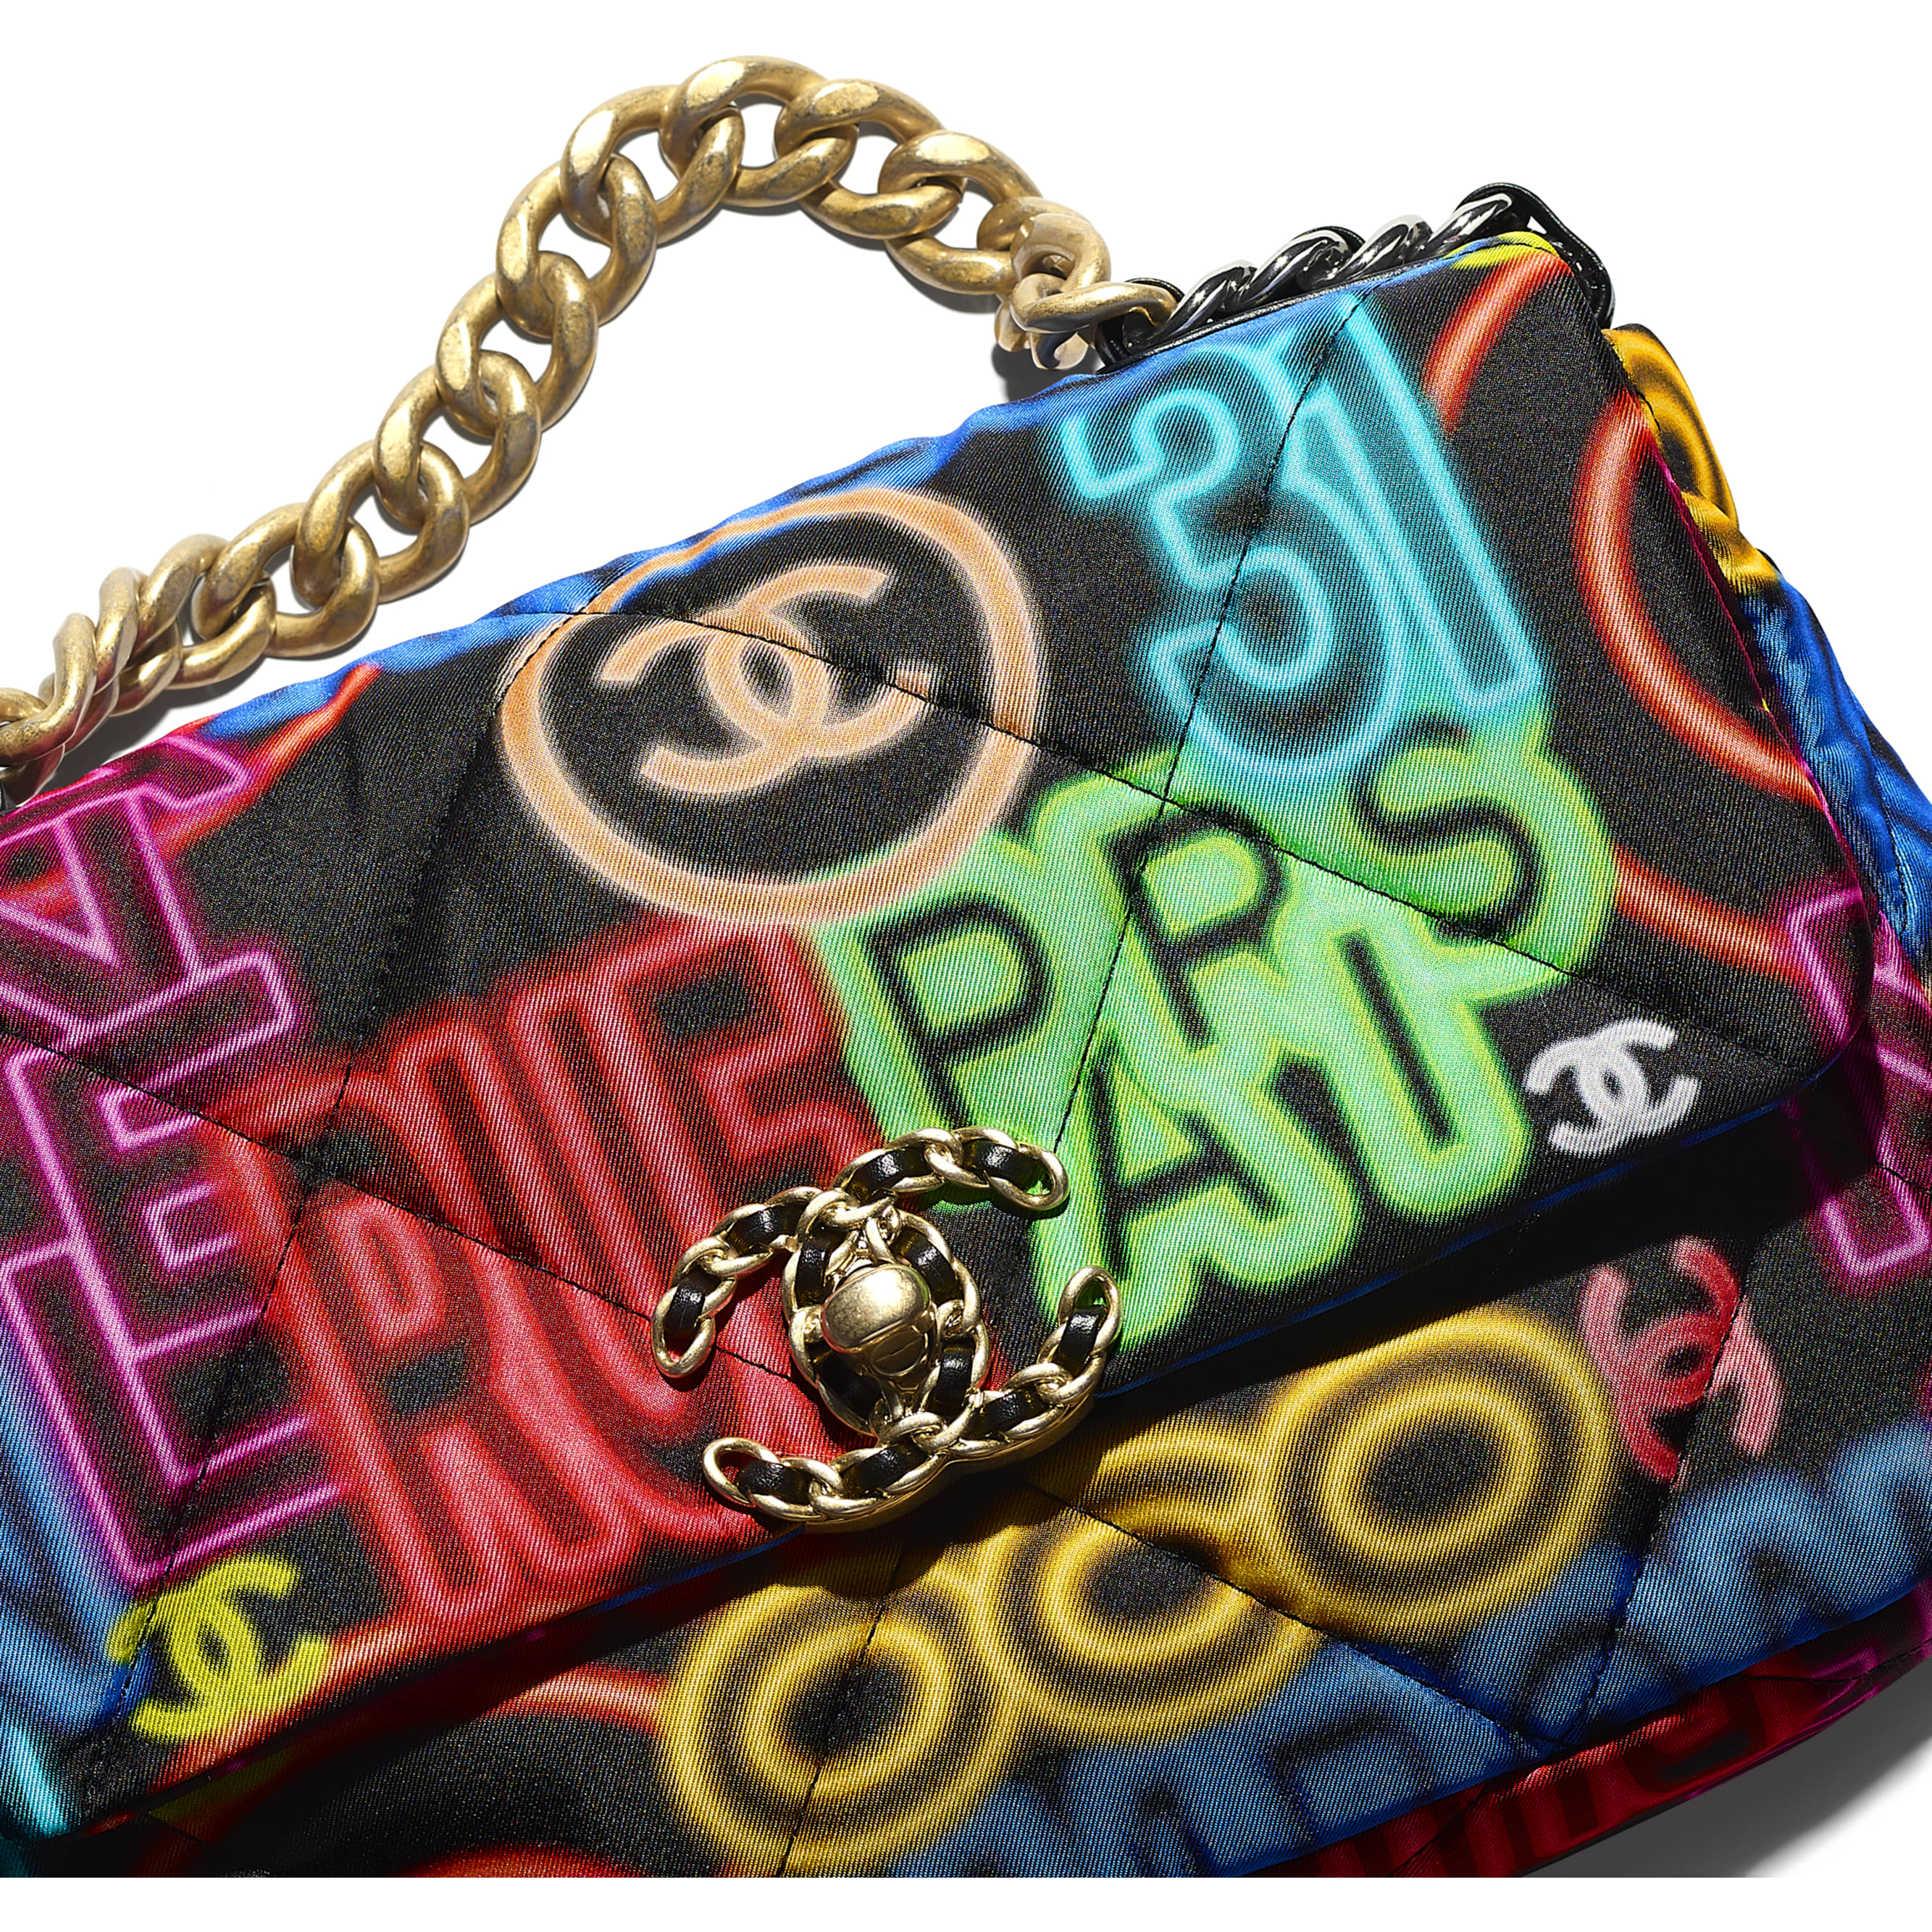 CHANEL 19 Handbag - Black & Multicolour - Printed Fabric, Gold-Tone, Silver-Tone & Ruthenium-Finish Metal - CHANEL - Extra view - see standard sized version